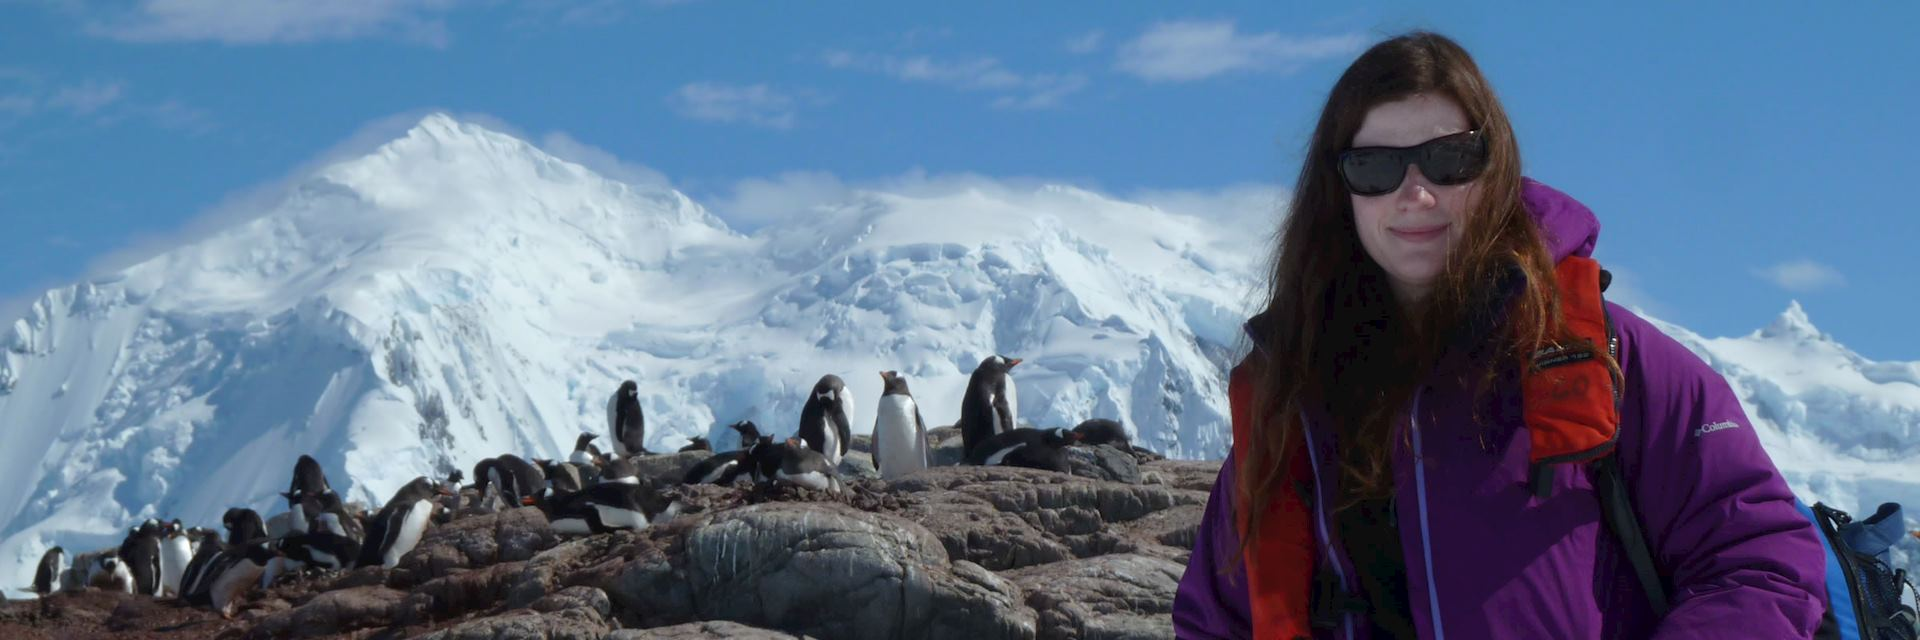 Lizzie with penguins in Antarctica